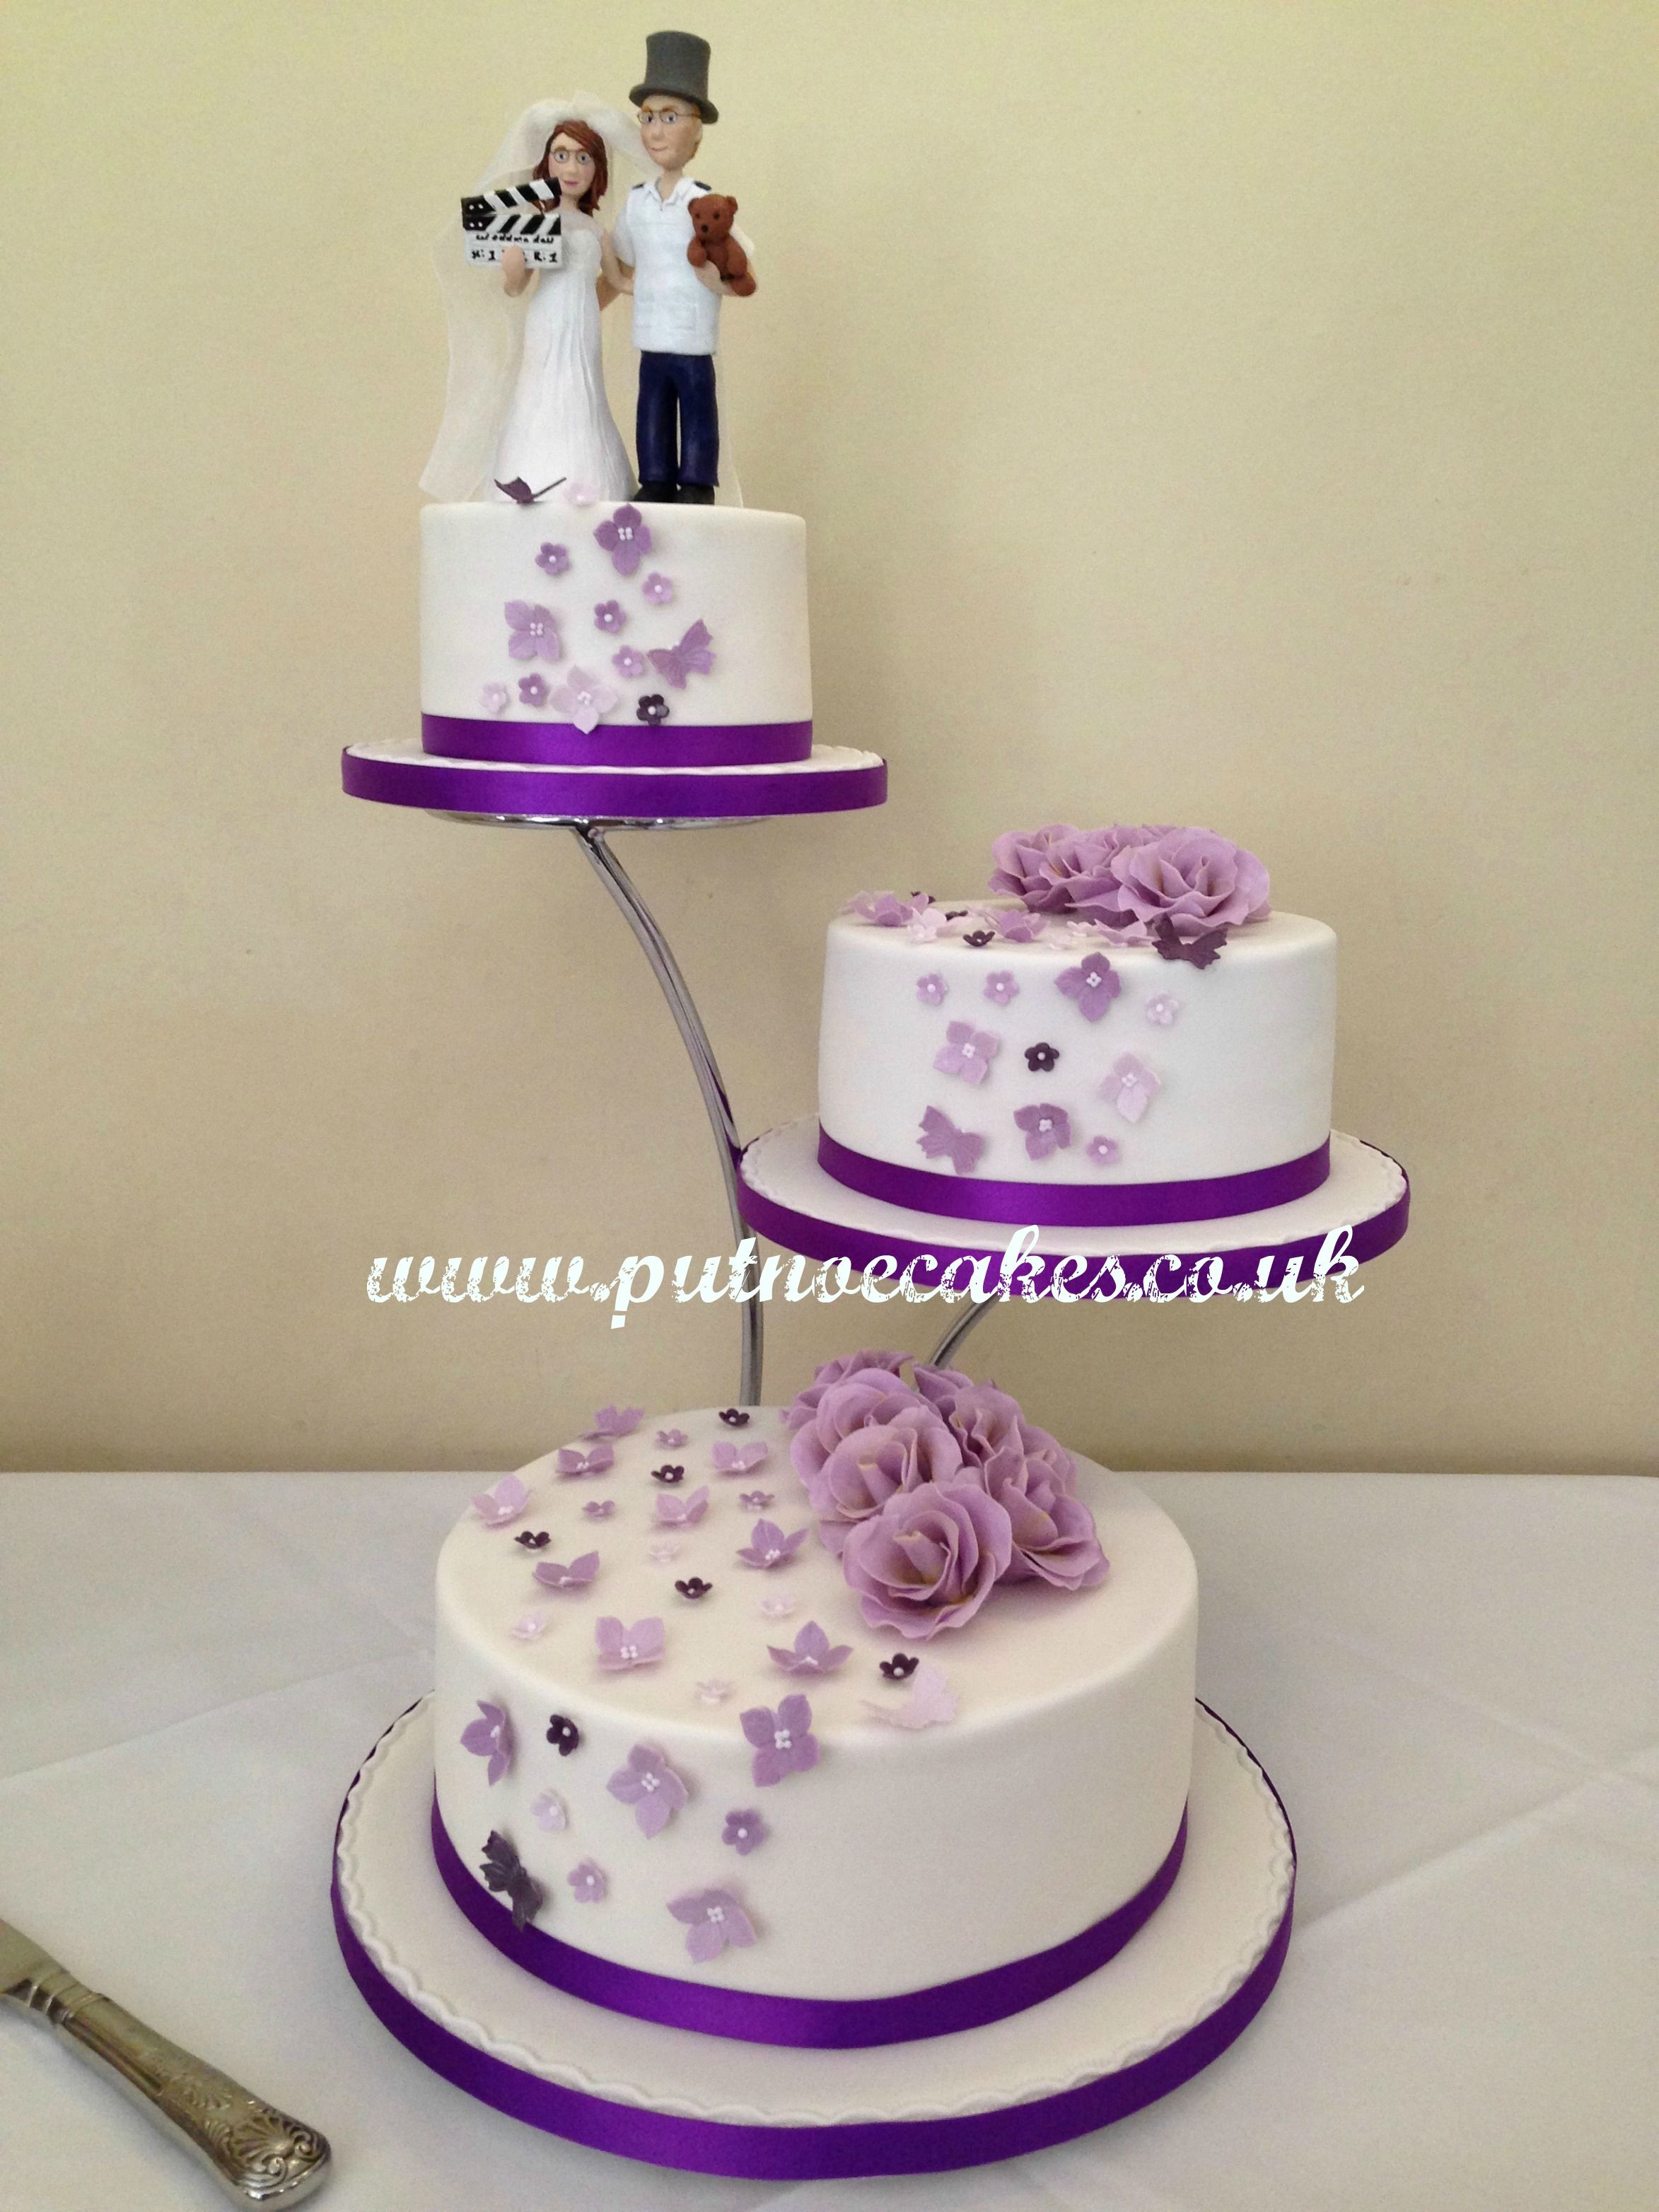 Separator Stand 3 Tier Wedding Cake Bride And Groom Topper Was